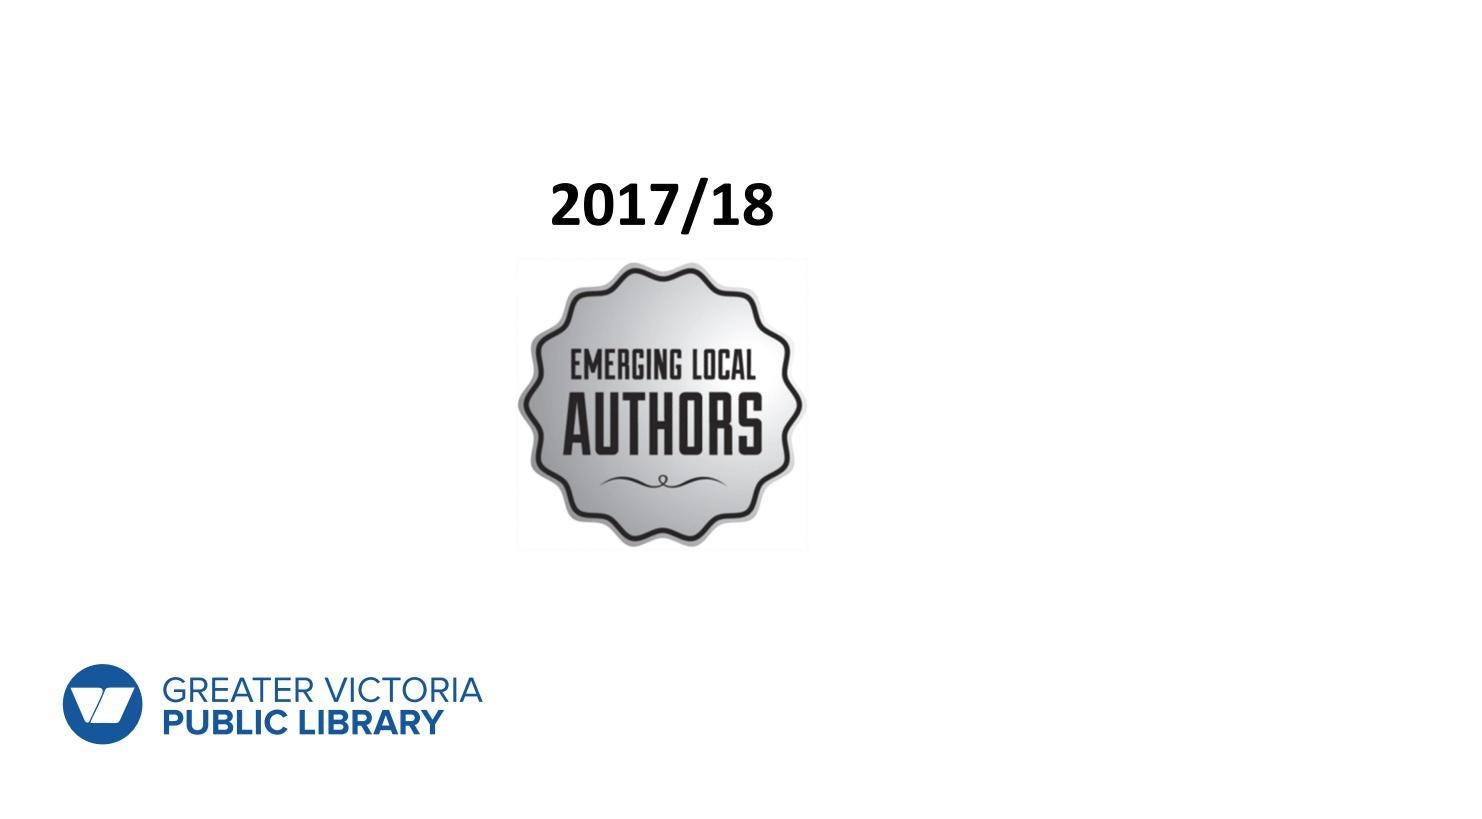 Emerging Local Authors Collection 2017 by Greater Victoria